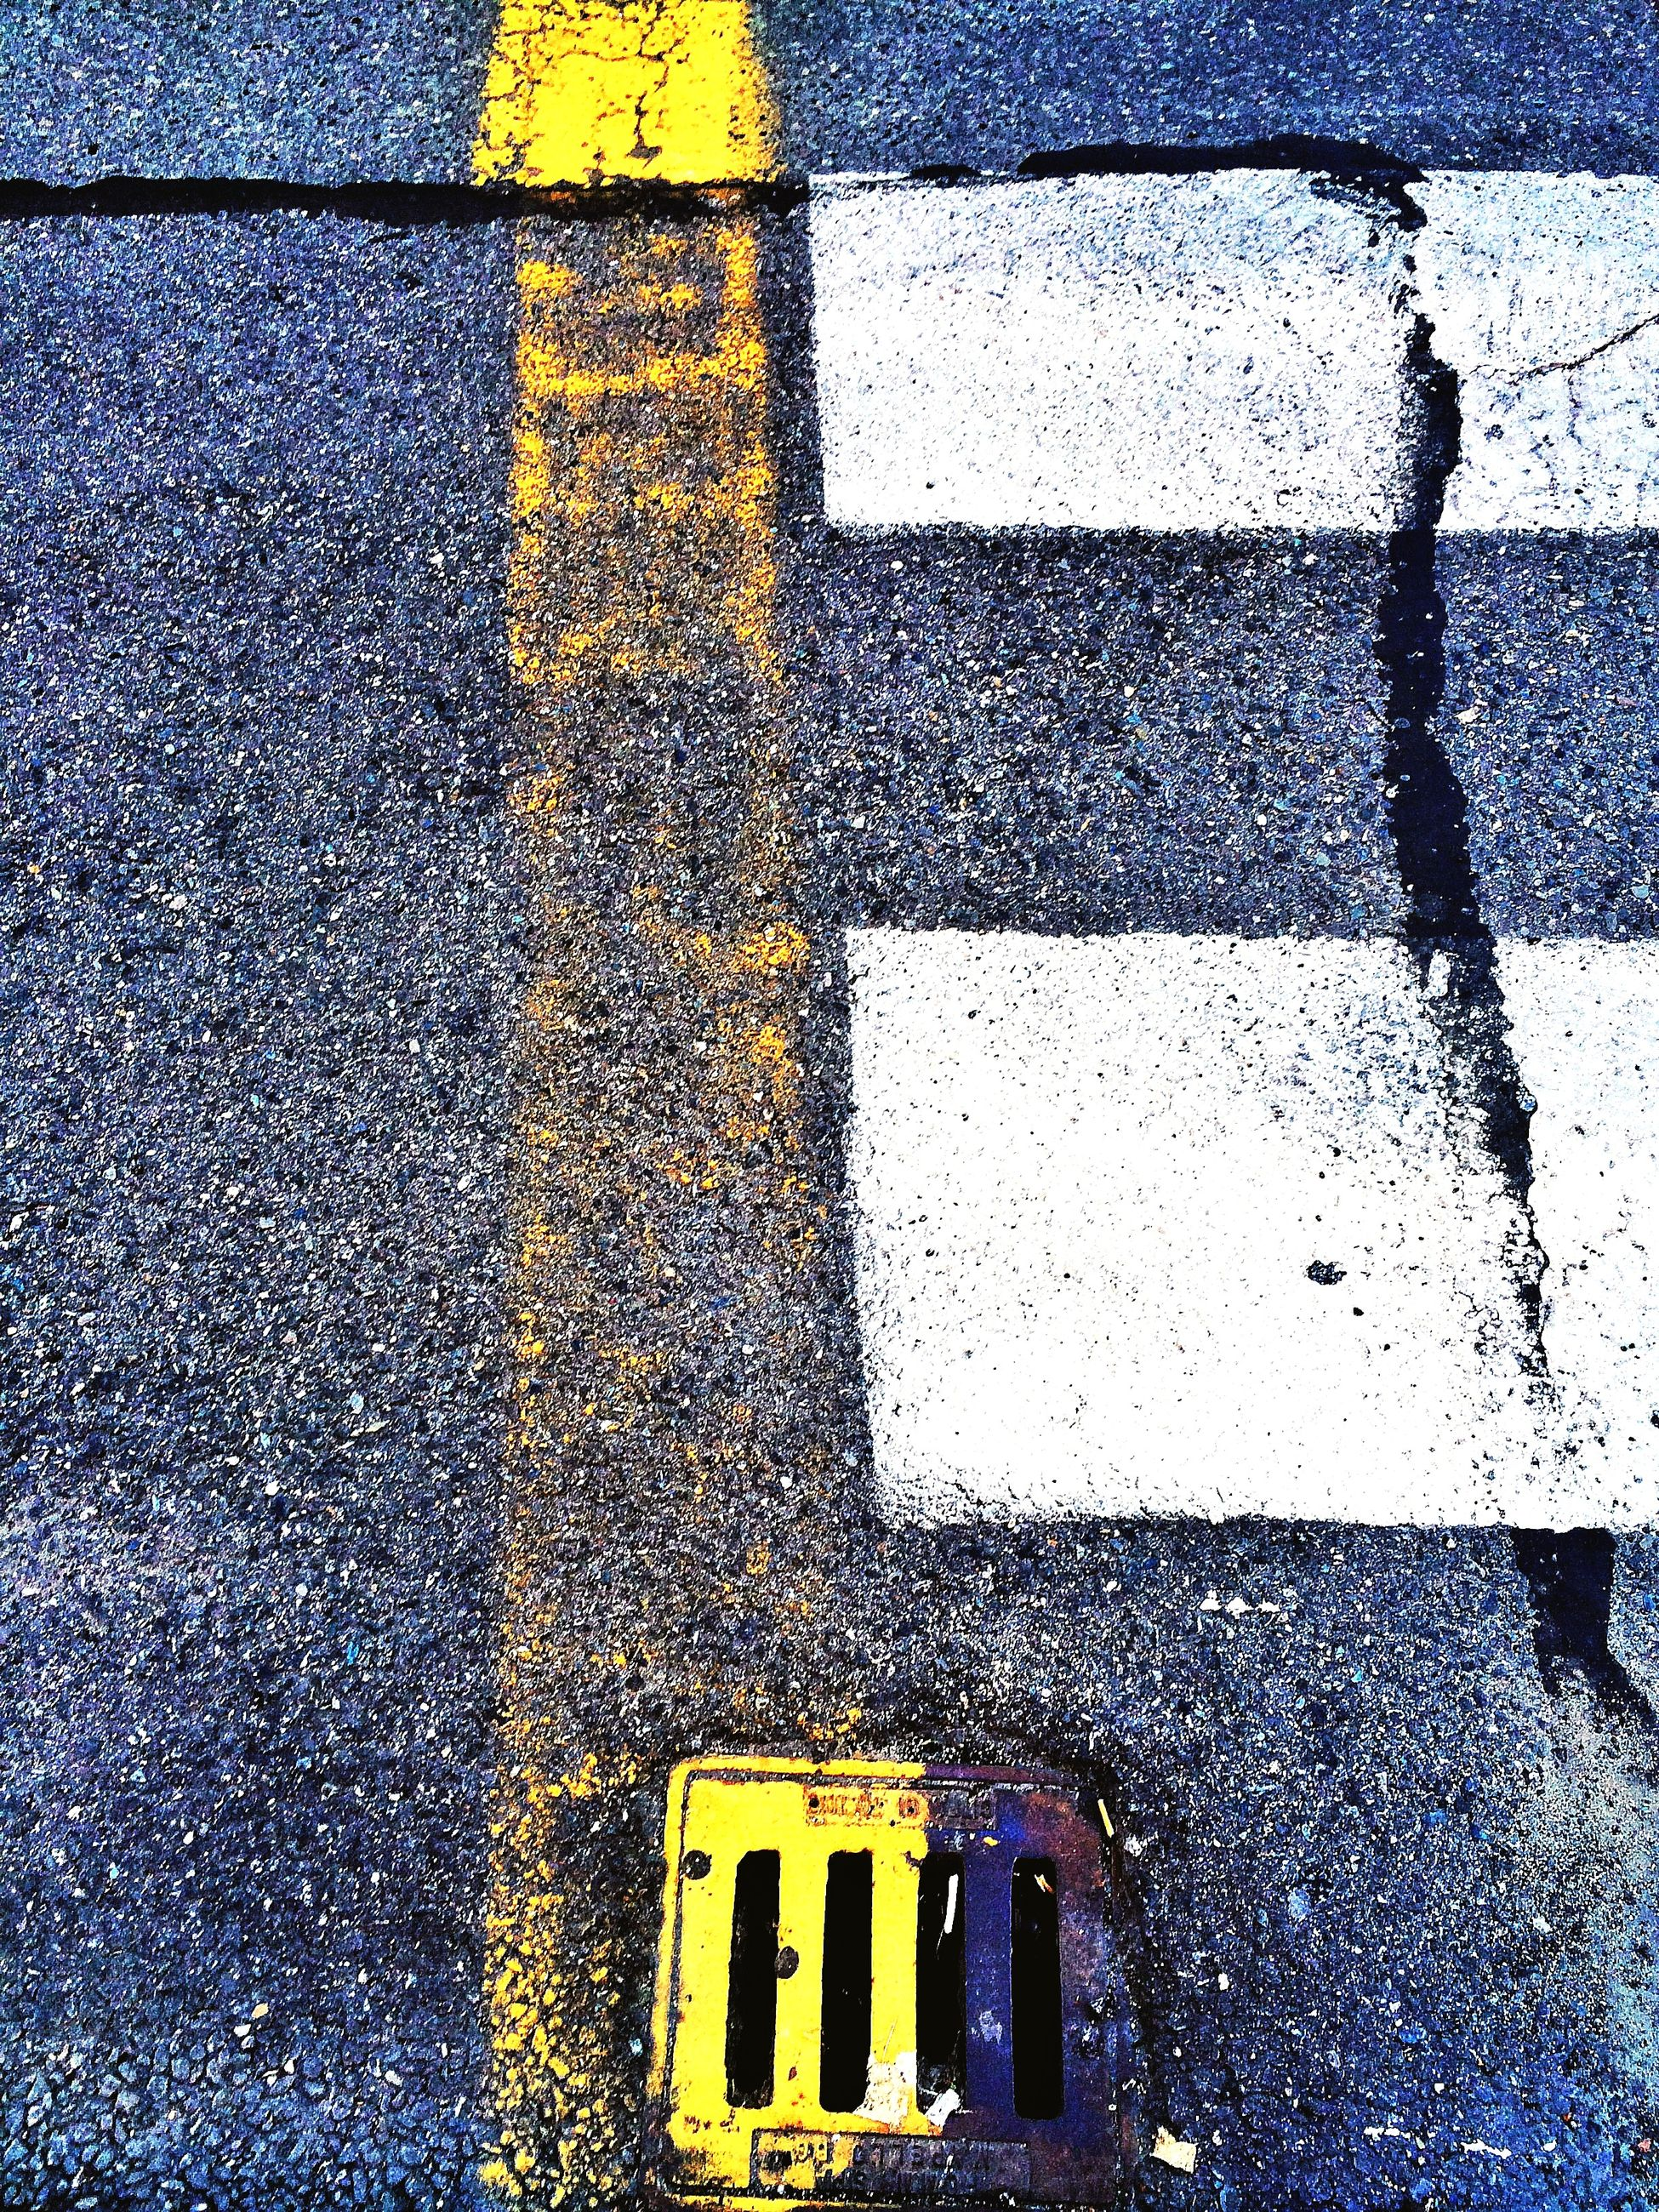 full frame, street, backgrounds, wet, transportation, yellow, road, rain, road marking, water, high angle view, season, textured, asphalt, window, day, architecture, weather, built structure, pattern